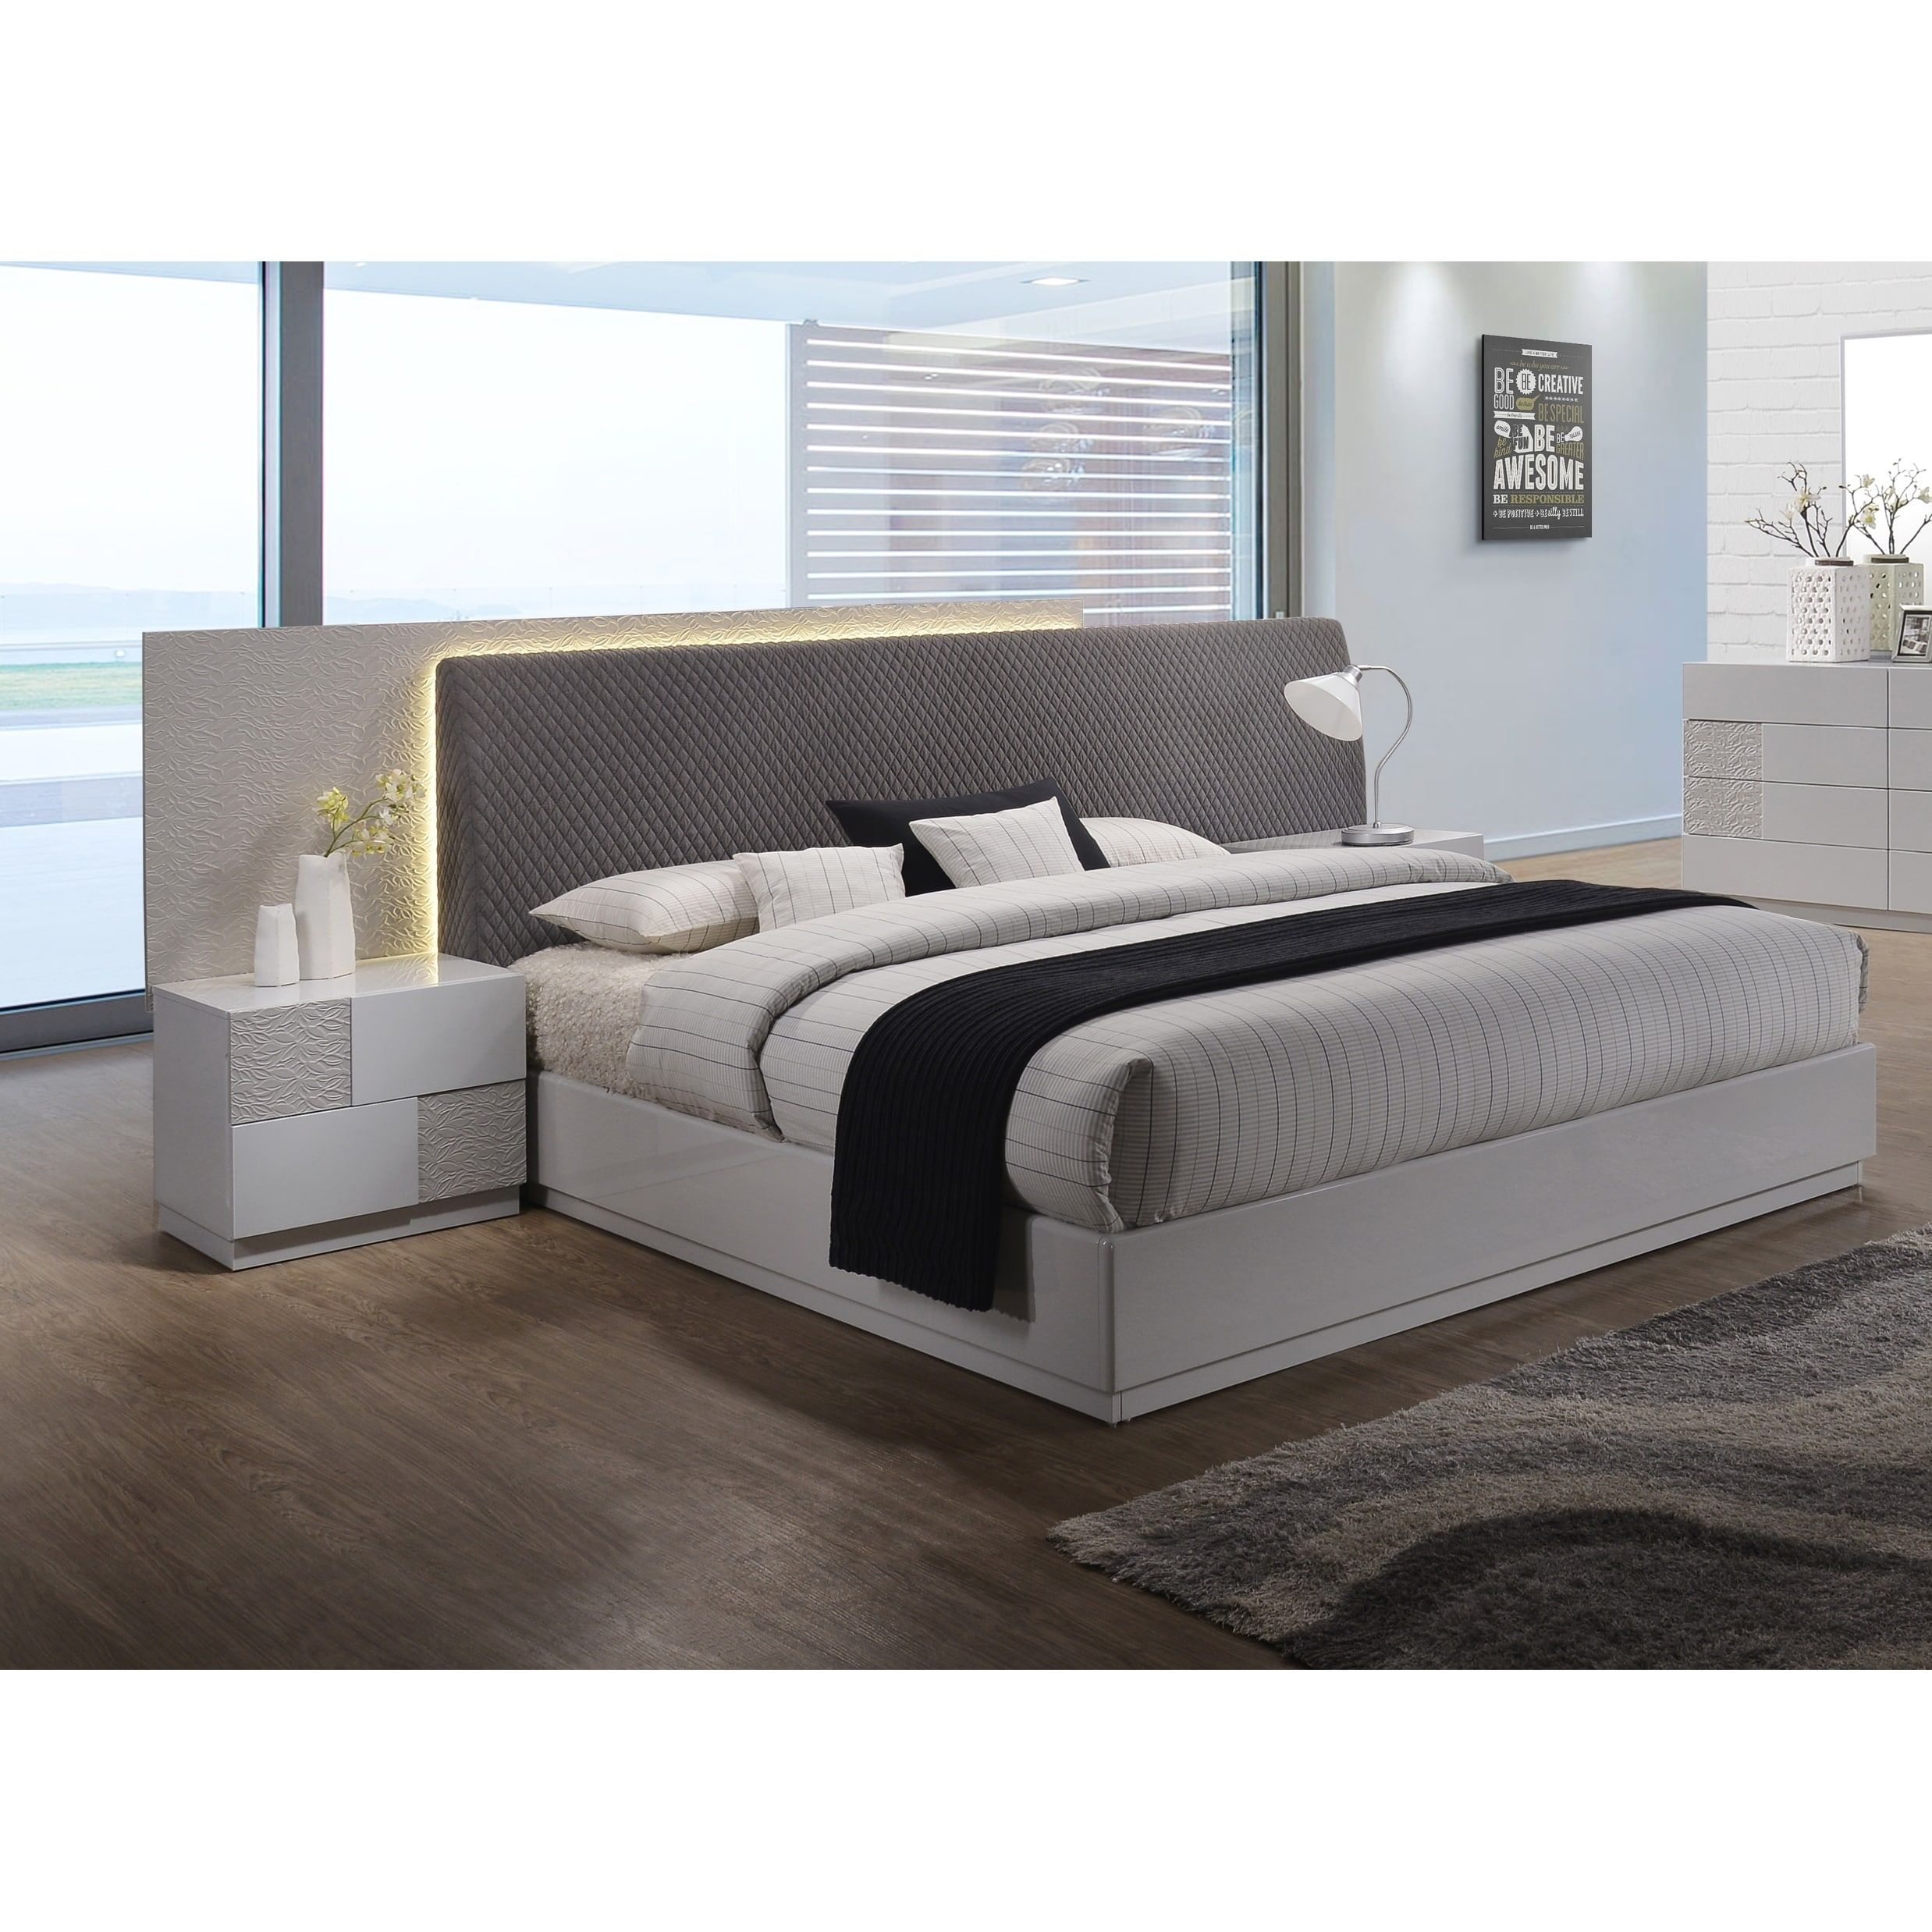 best master furniture naple silver line platform bed with led light